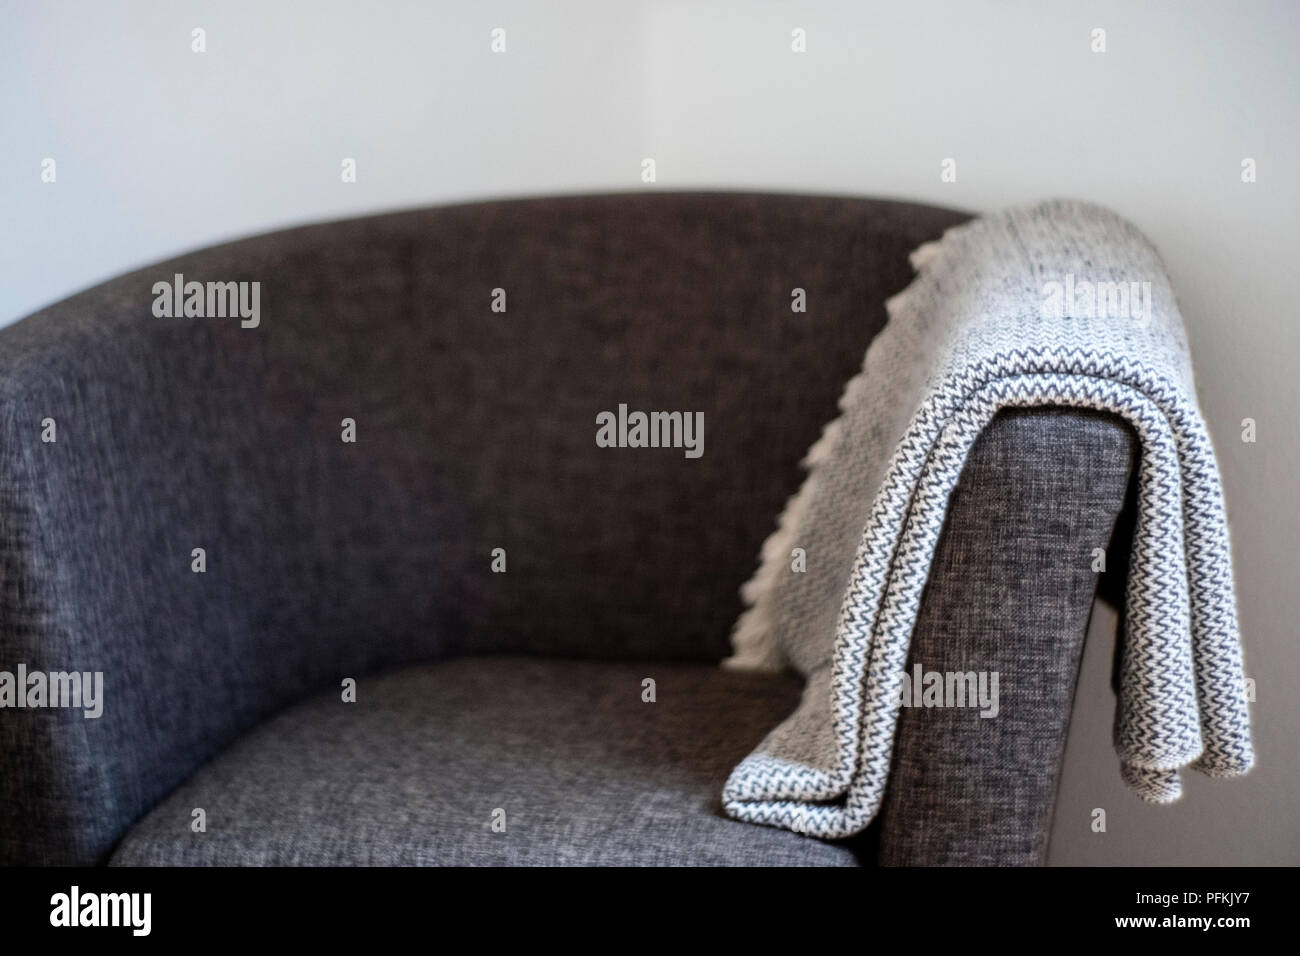 Blanket on a sofa - Stock Image